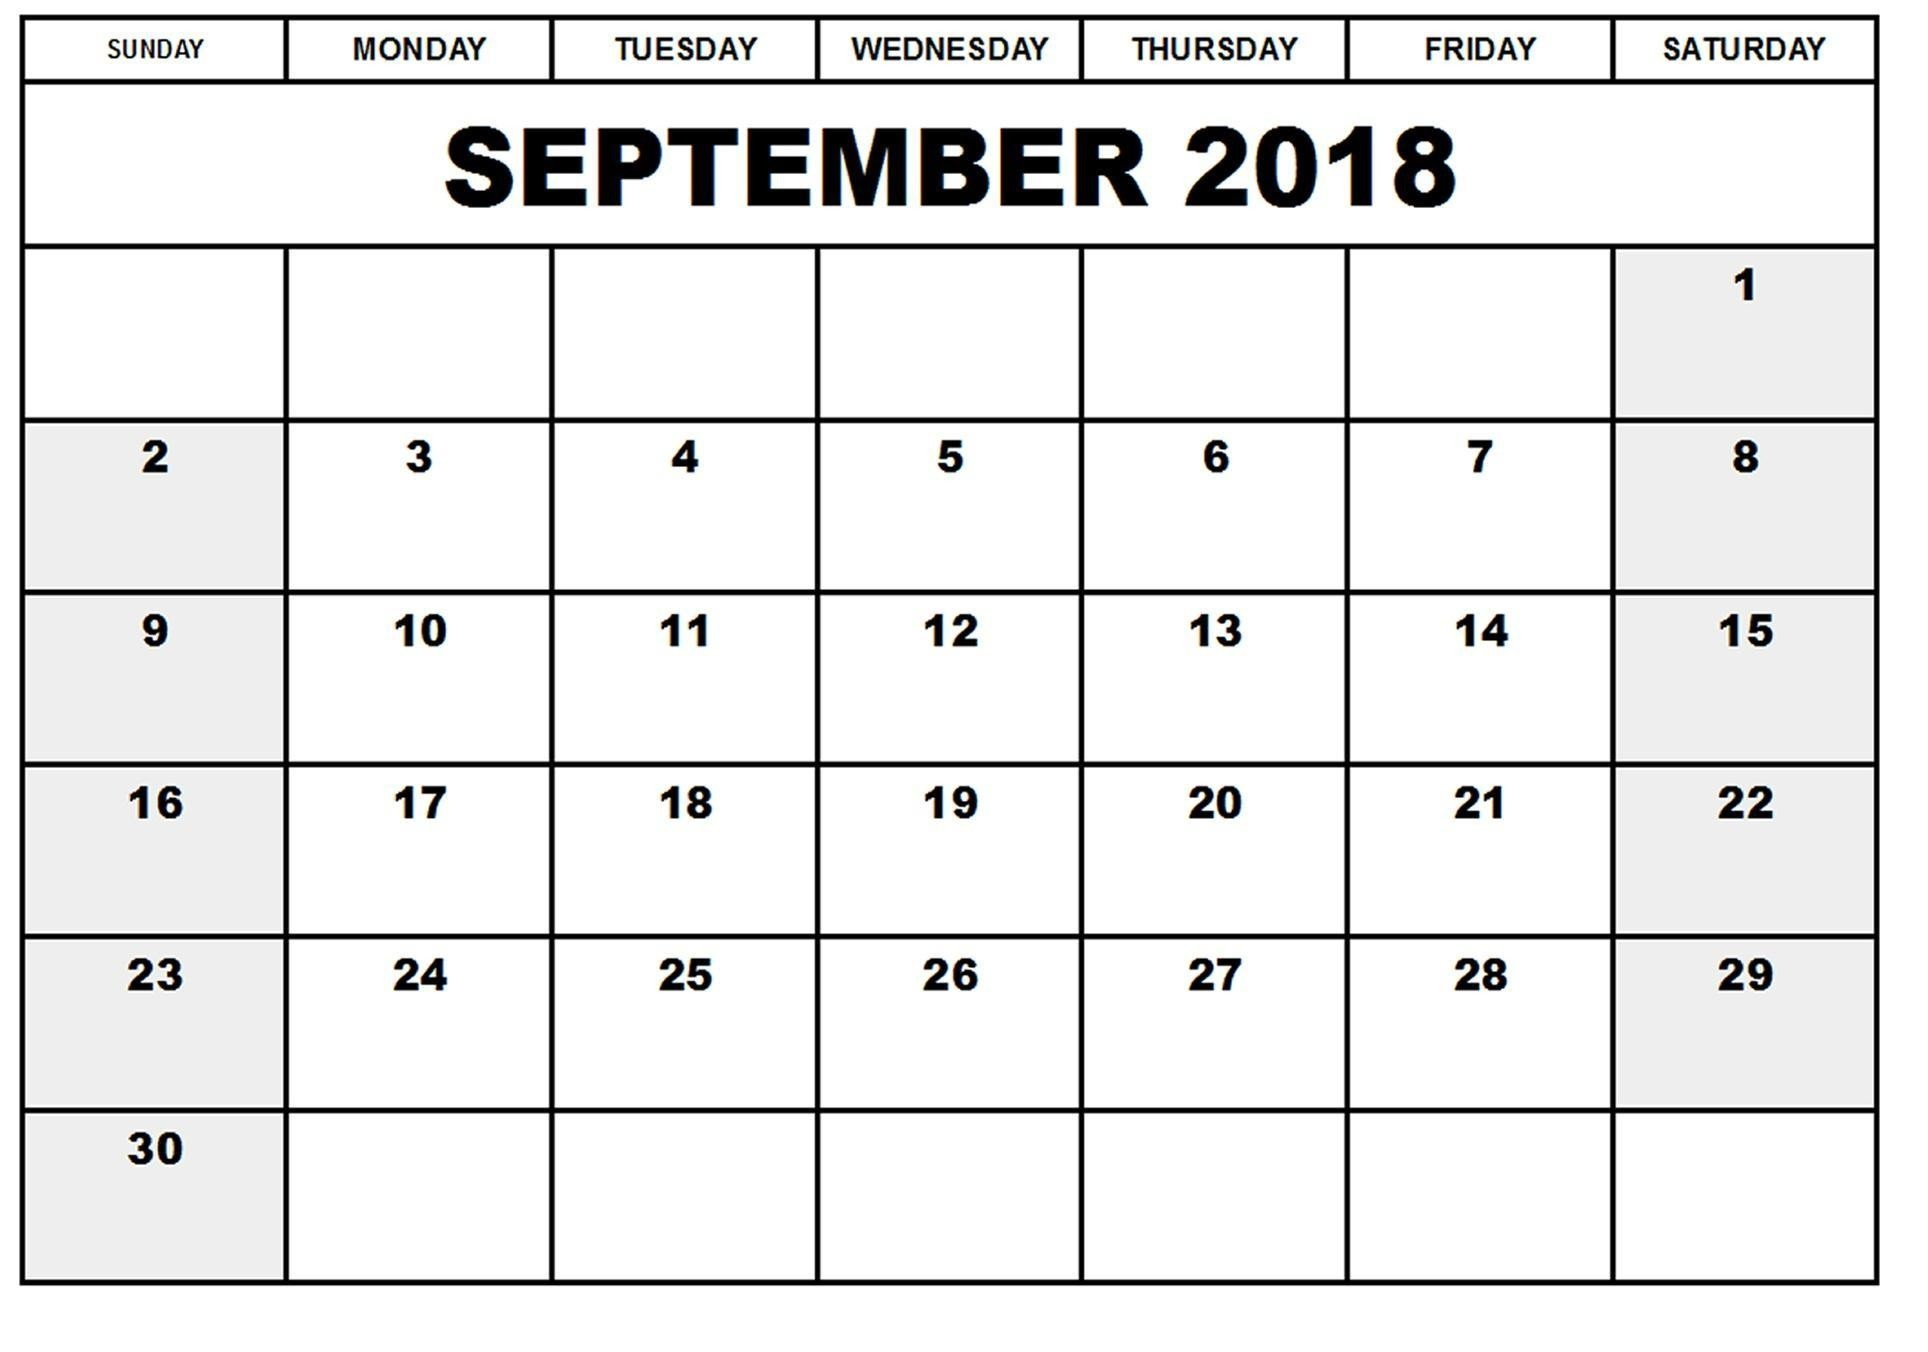 September 2018 Calendar Printable Table